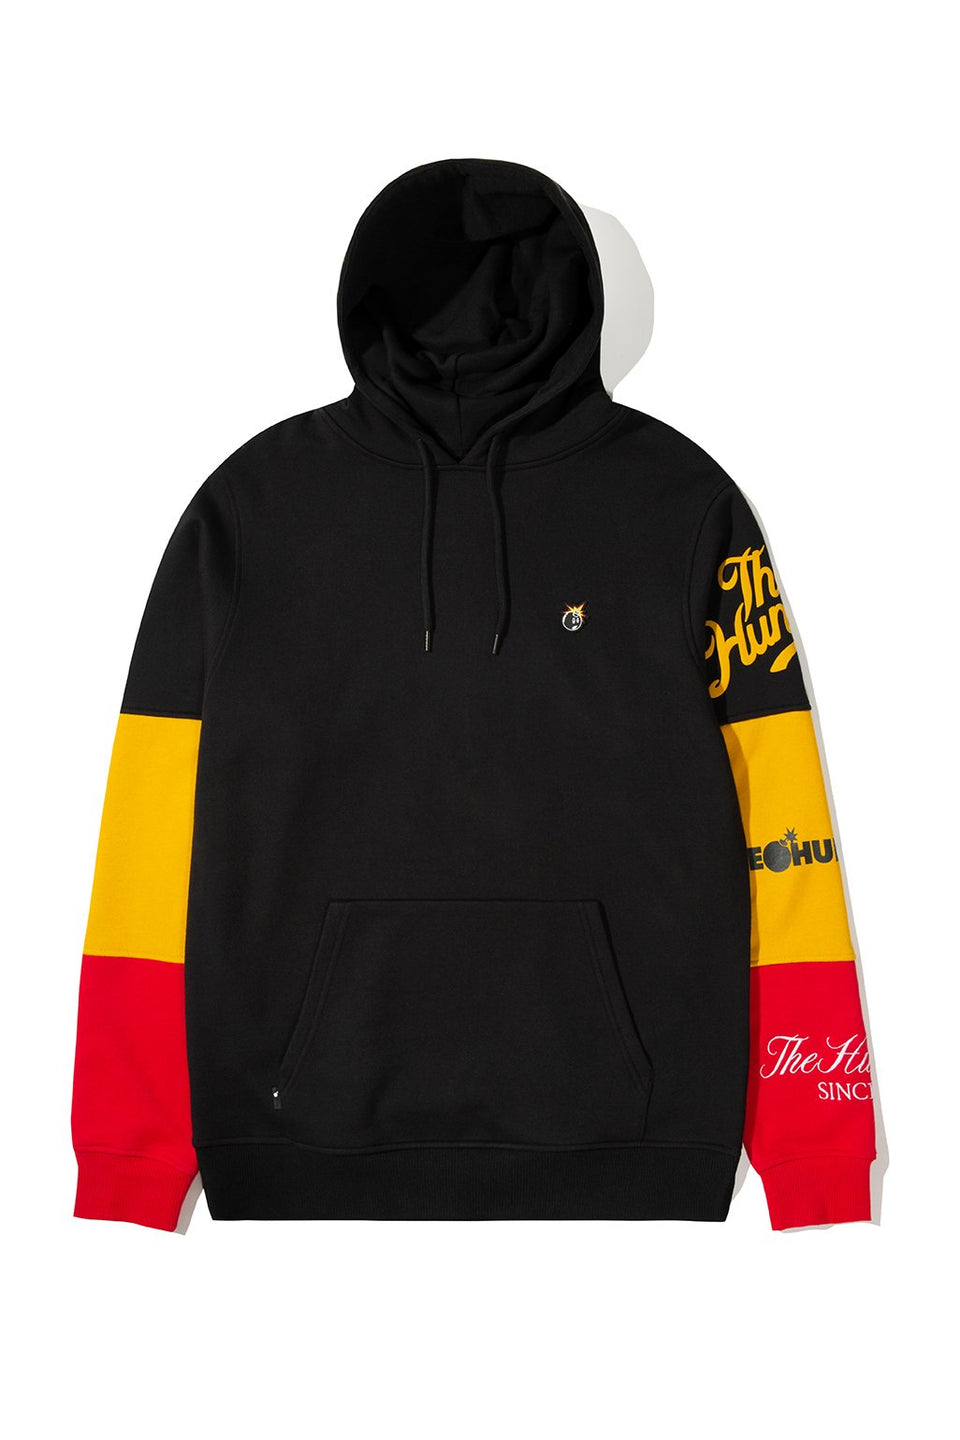 The Hundreds Hollow Pullover Hoodie TOPS Black